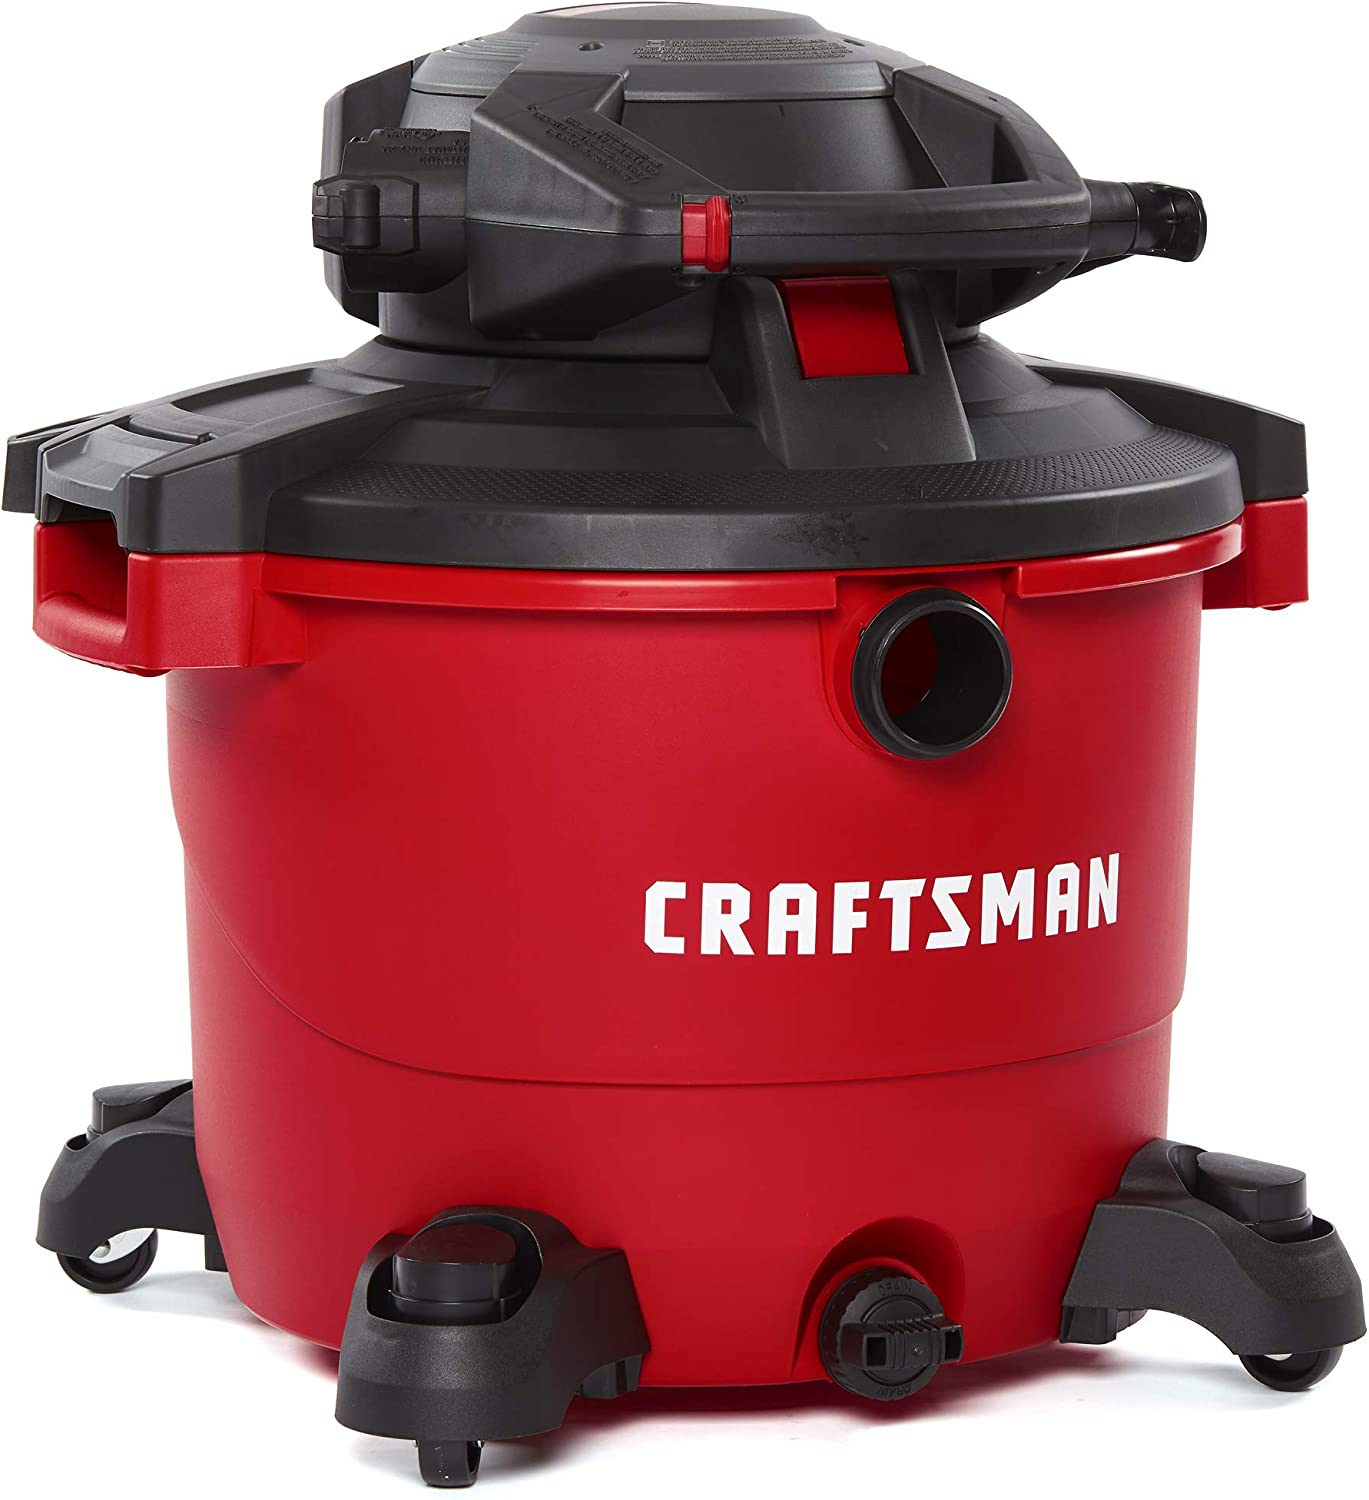 CRAFTSMAN CMXEVBE17607 16 gallon 6.5 Peak Hp Wet Dry Vac with Detachable Leaf Blower, Heavy-Duty Shop Vacuum with Attachments